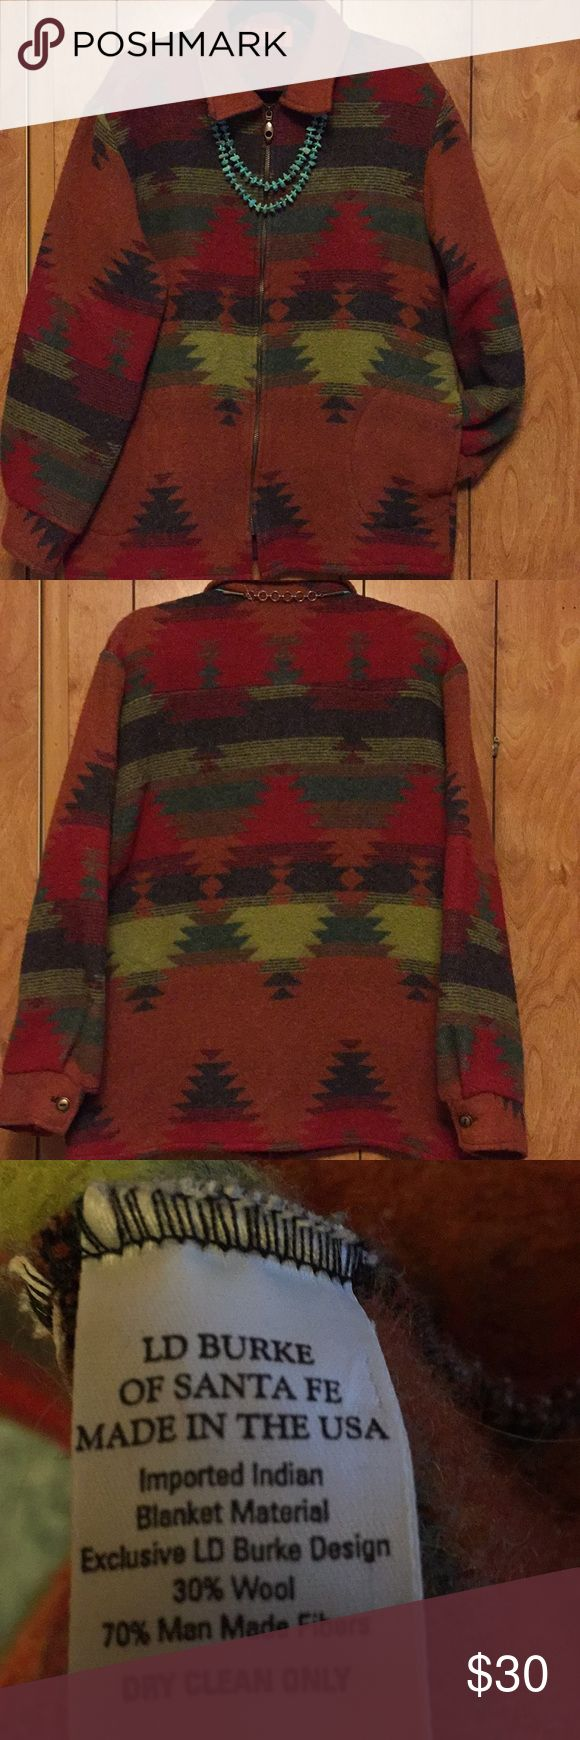 Indian blanket Coat Santa Fe Style Ladies Coat. Imported Indian blanket material. 2 nice pockets on each side of Coat. Zipper front closure. Southwest colors of rust, red and greens.  Super sweet coat Made in the USA LD Burke of Santa Fe Jackets & Coats Blazers